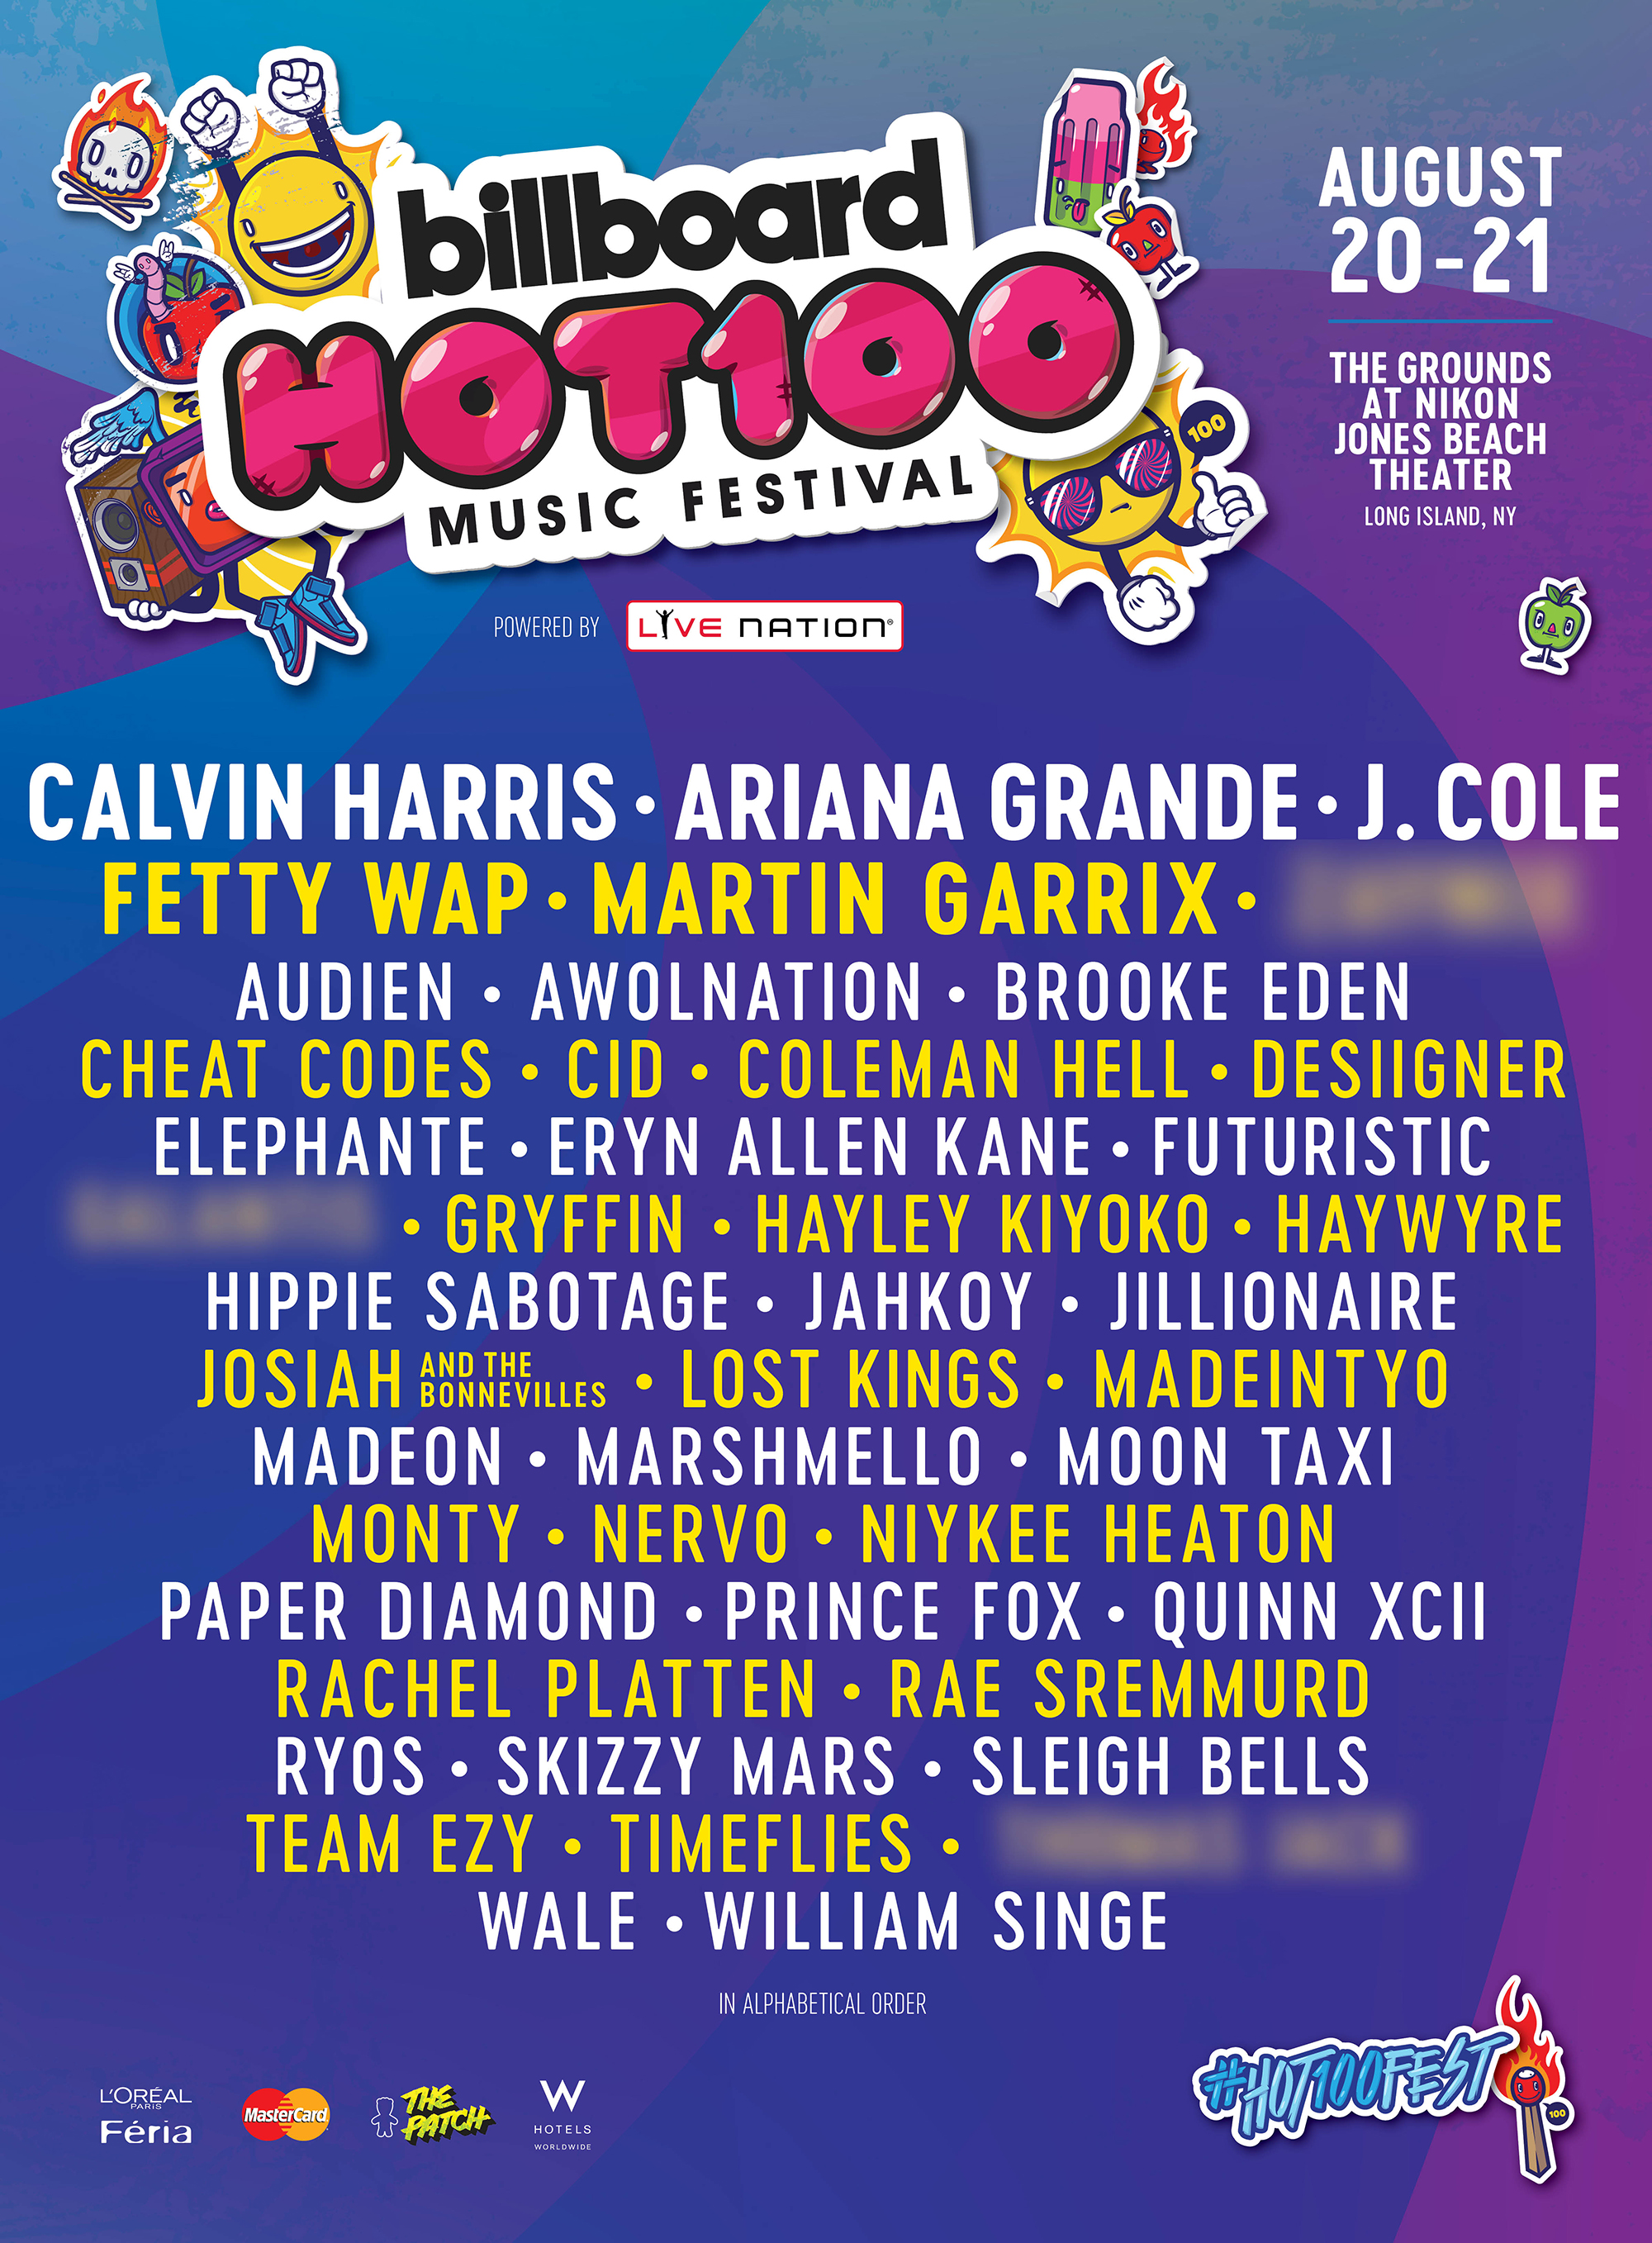 hot-100-fest-2016-poster-billbaord-2000